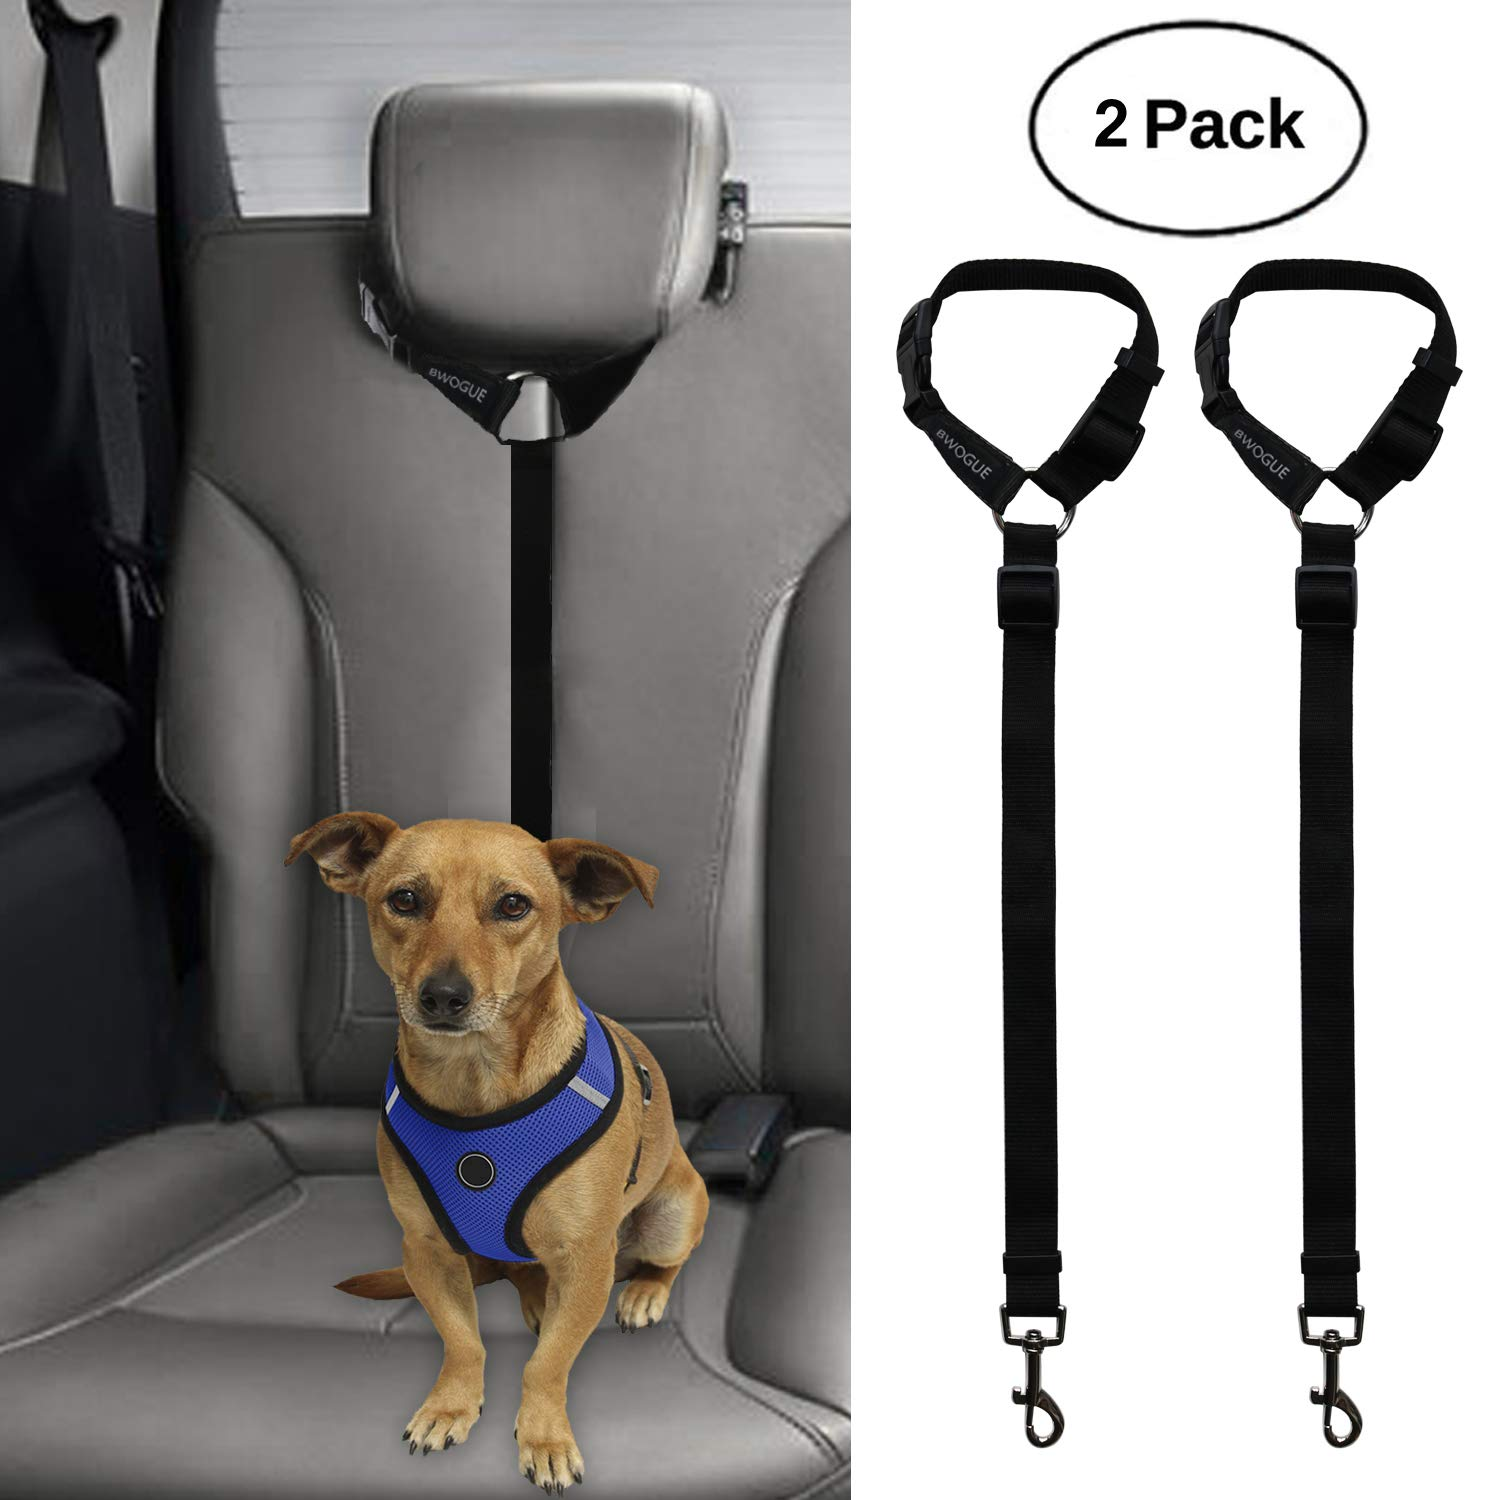 BWOGUE 2 Packs Dog Cat Safety Seat Belt Strap Car Headrest Restraint Adjustable Nylon Fabric Dog Restraints Vehicle Seatbelts Harness by BWOGUE